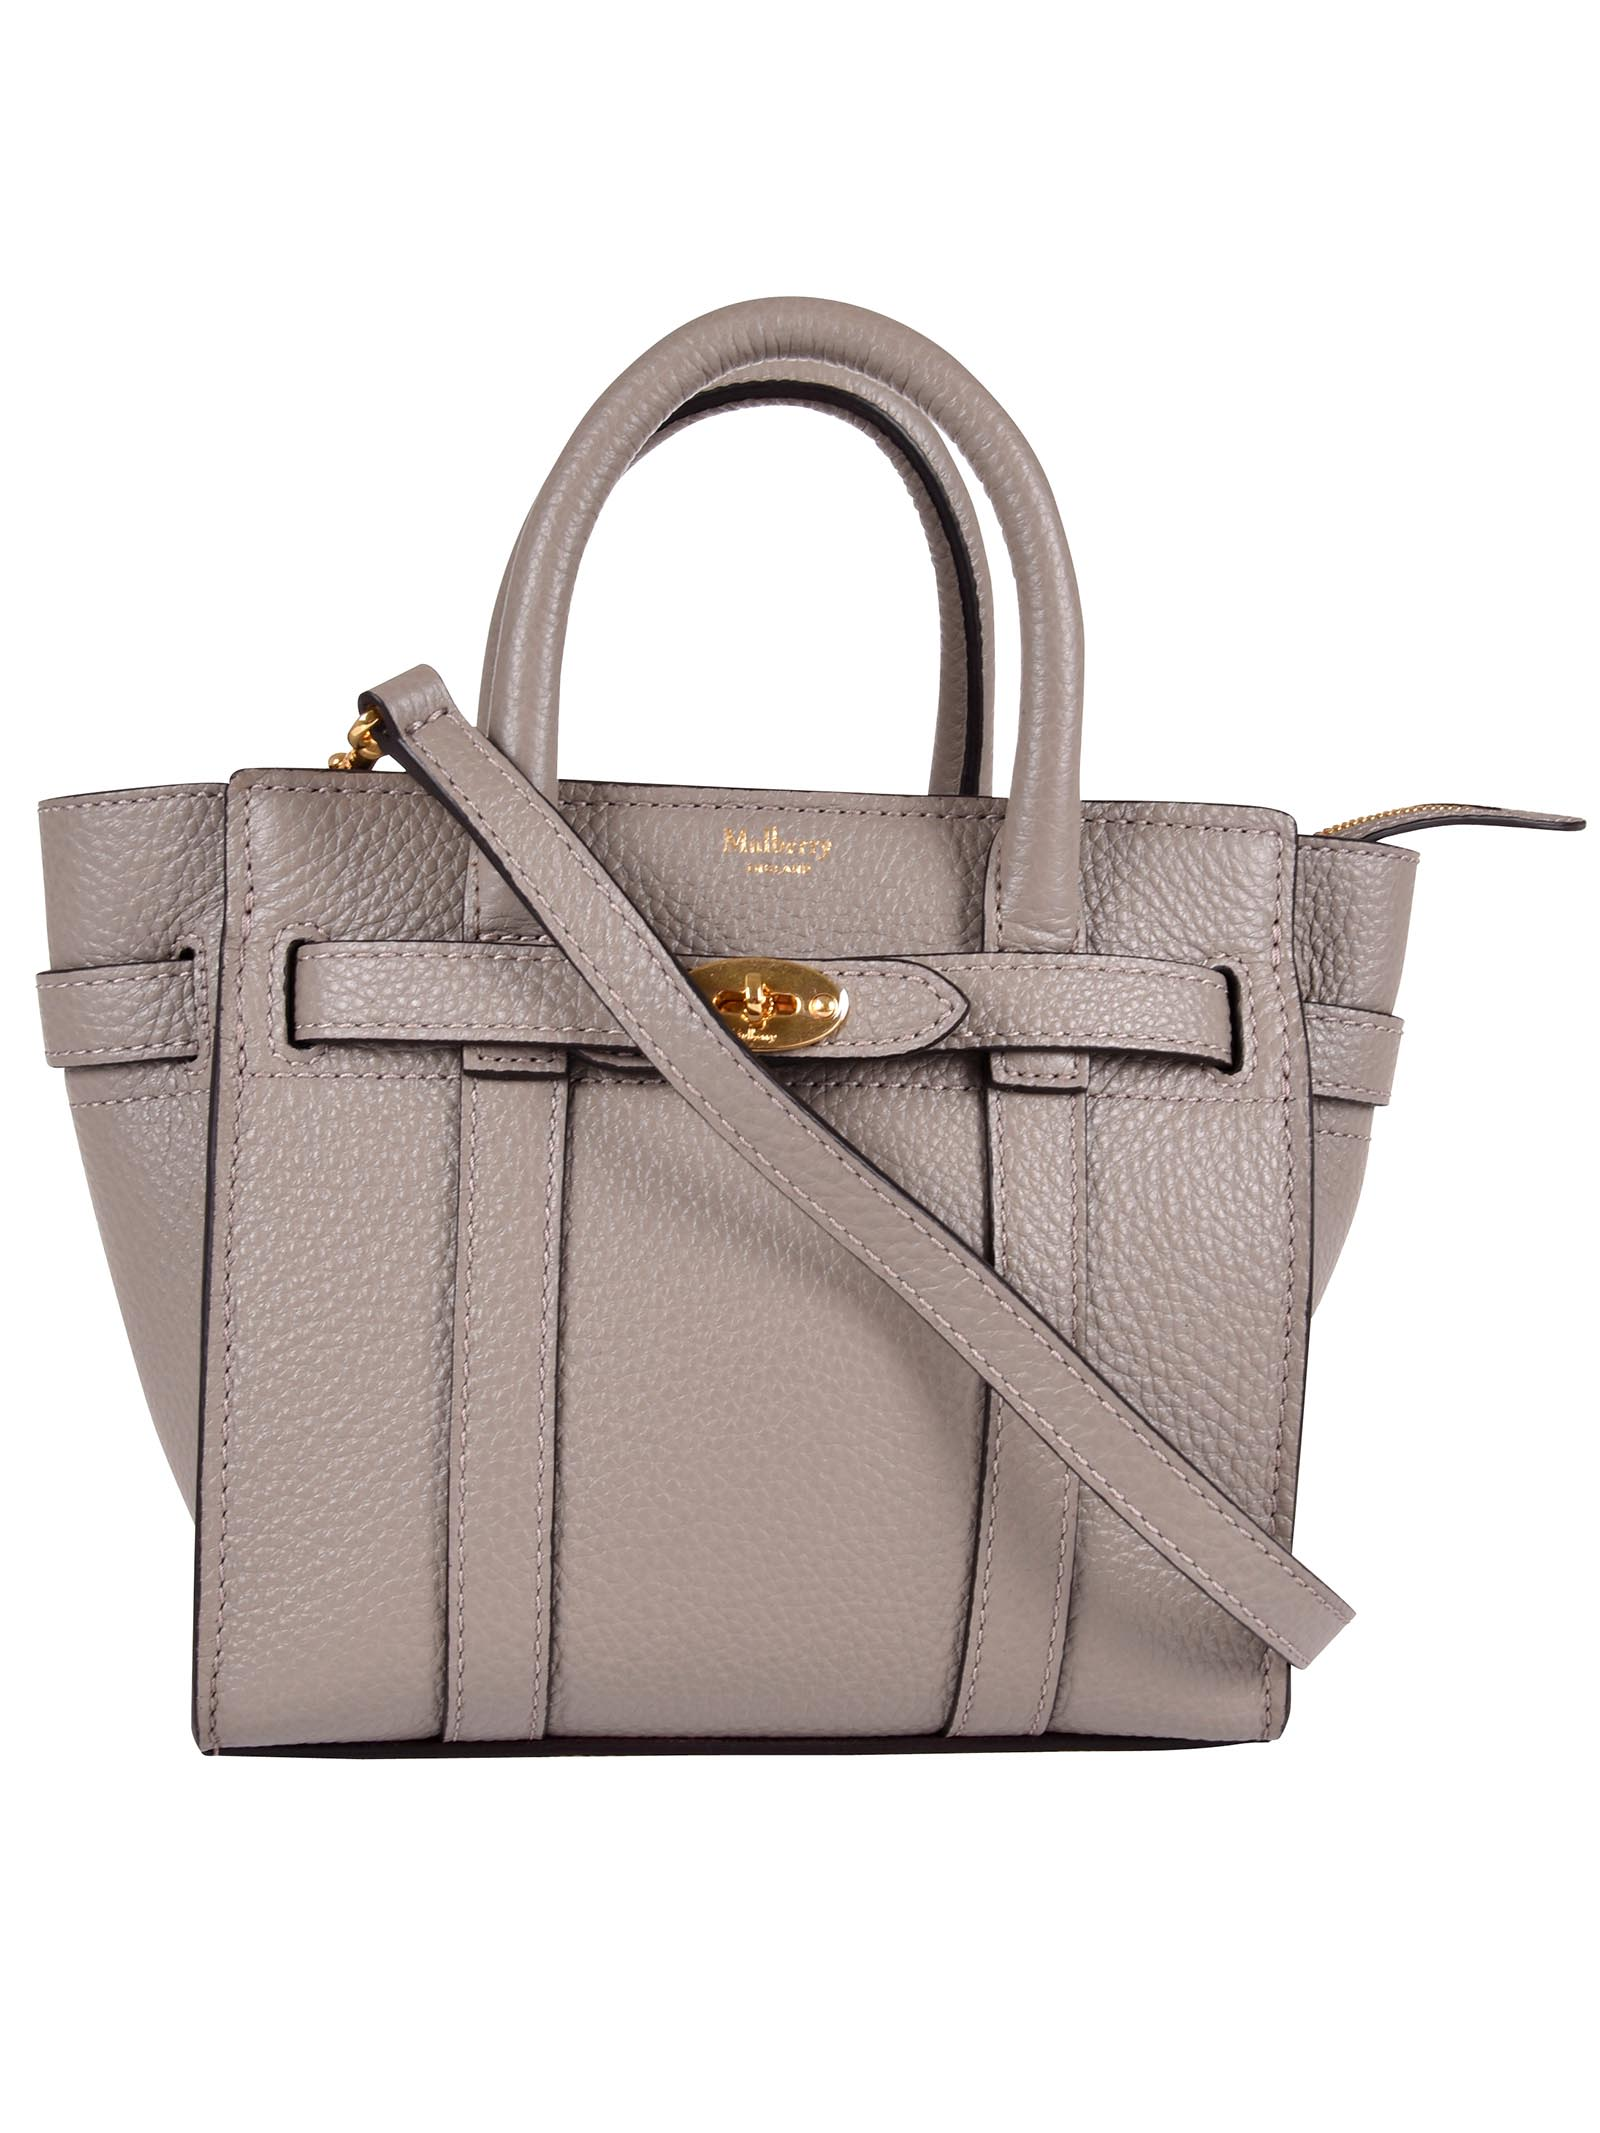 Mulberry Micro Zipped Bayswater Tote In Dsolid Grey  7f43b657e7f52